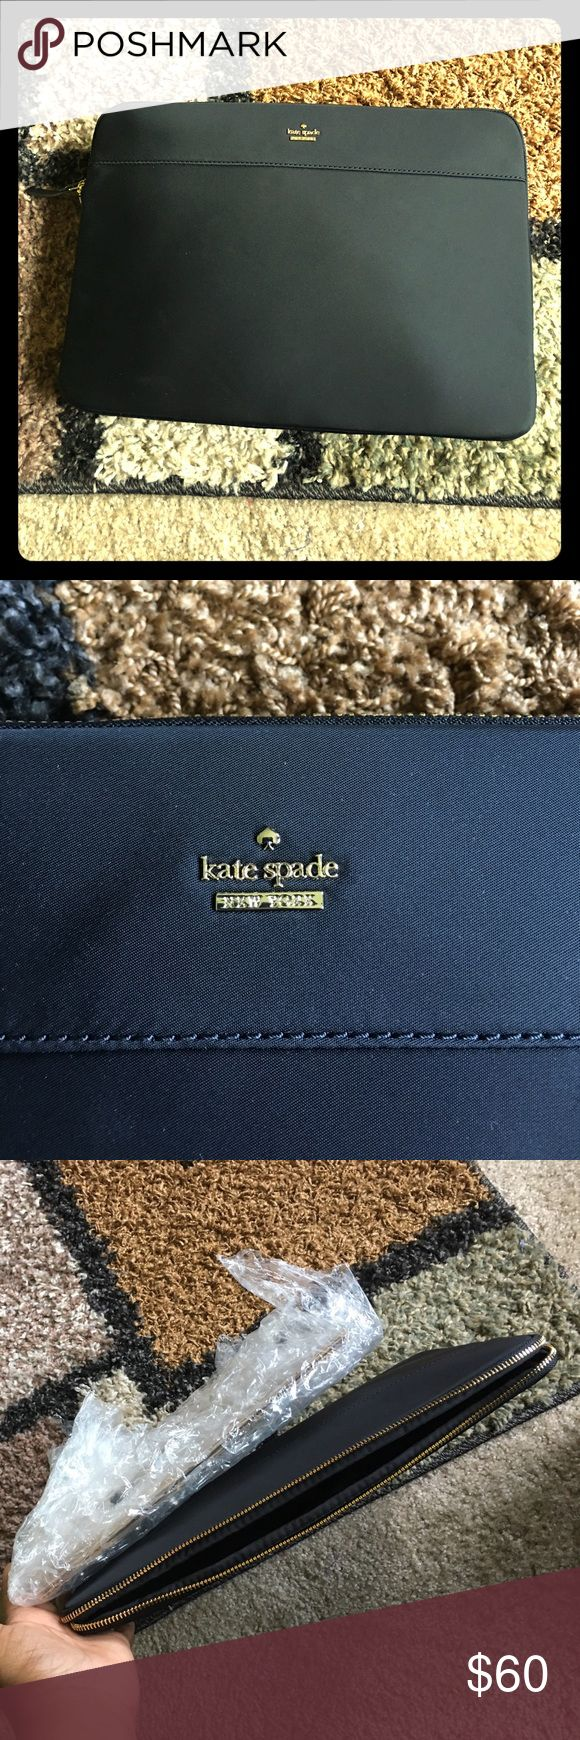 NWOT Kate Spade tablet or small laptop sleeve Never used black tablet or small laptop sleeve.  Zips open/close.  The size of the sleeve is 13 1/2 by 9 3/4 by 1 1/4. kate spade Accessories Tablet Cases